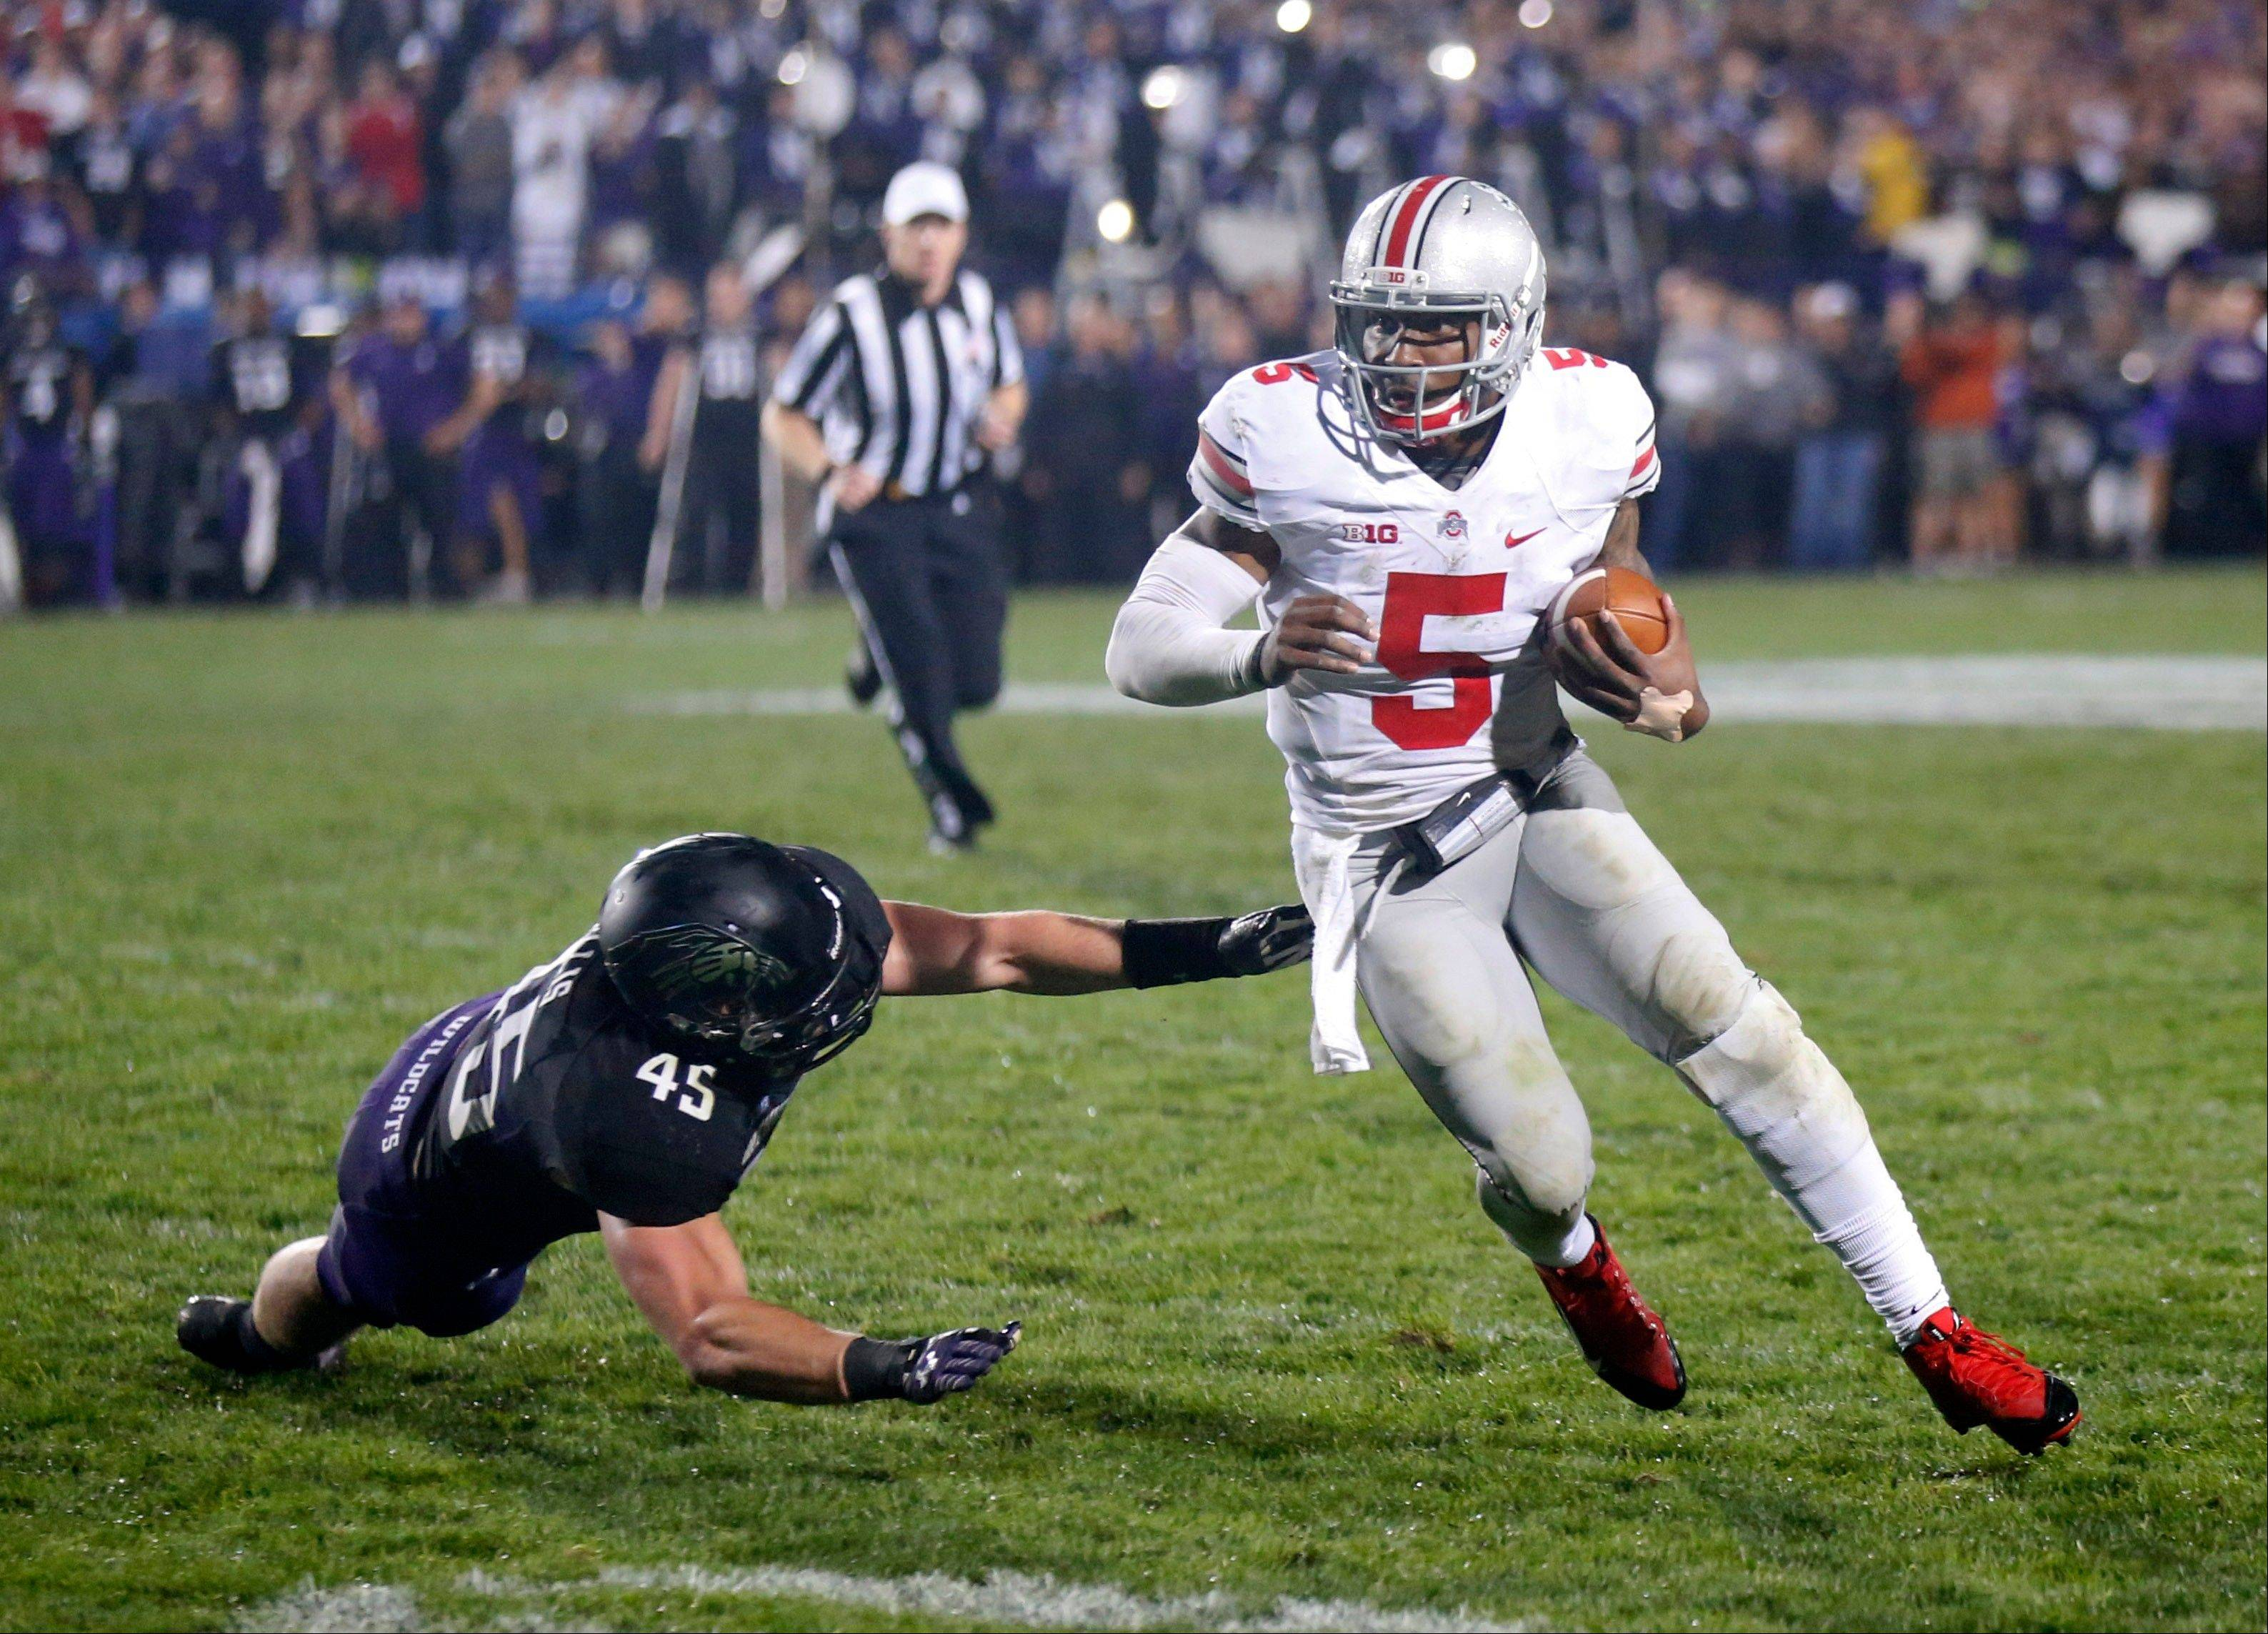 Ohio State quarterback Braxton Miller (5) runs past the outstretched hand of Northwestern linebacker Collin Ellis (45) during Saturday�s game in Evanston. Ohio State won 40-30.